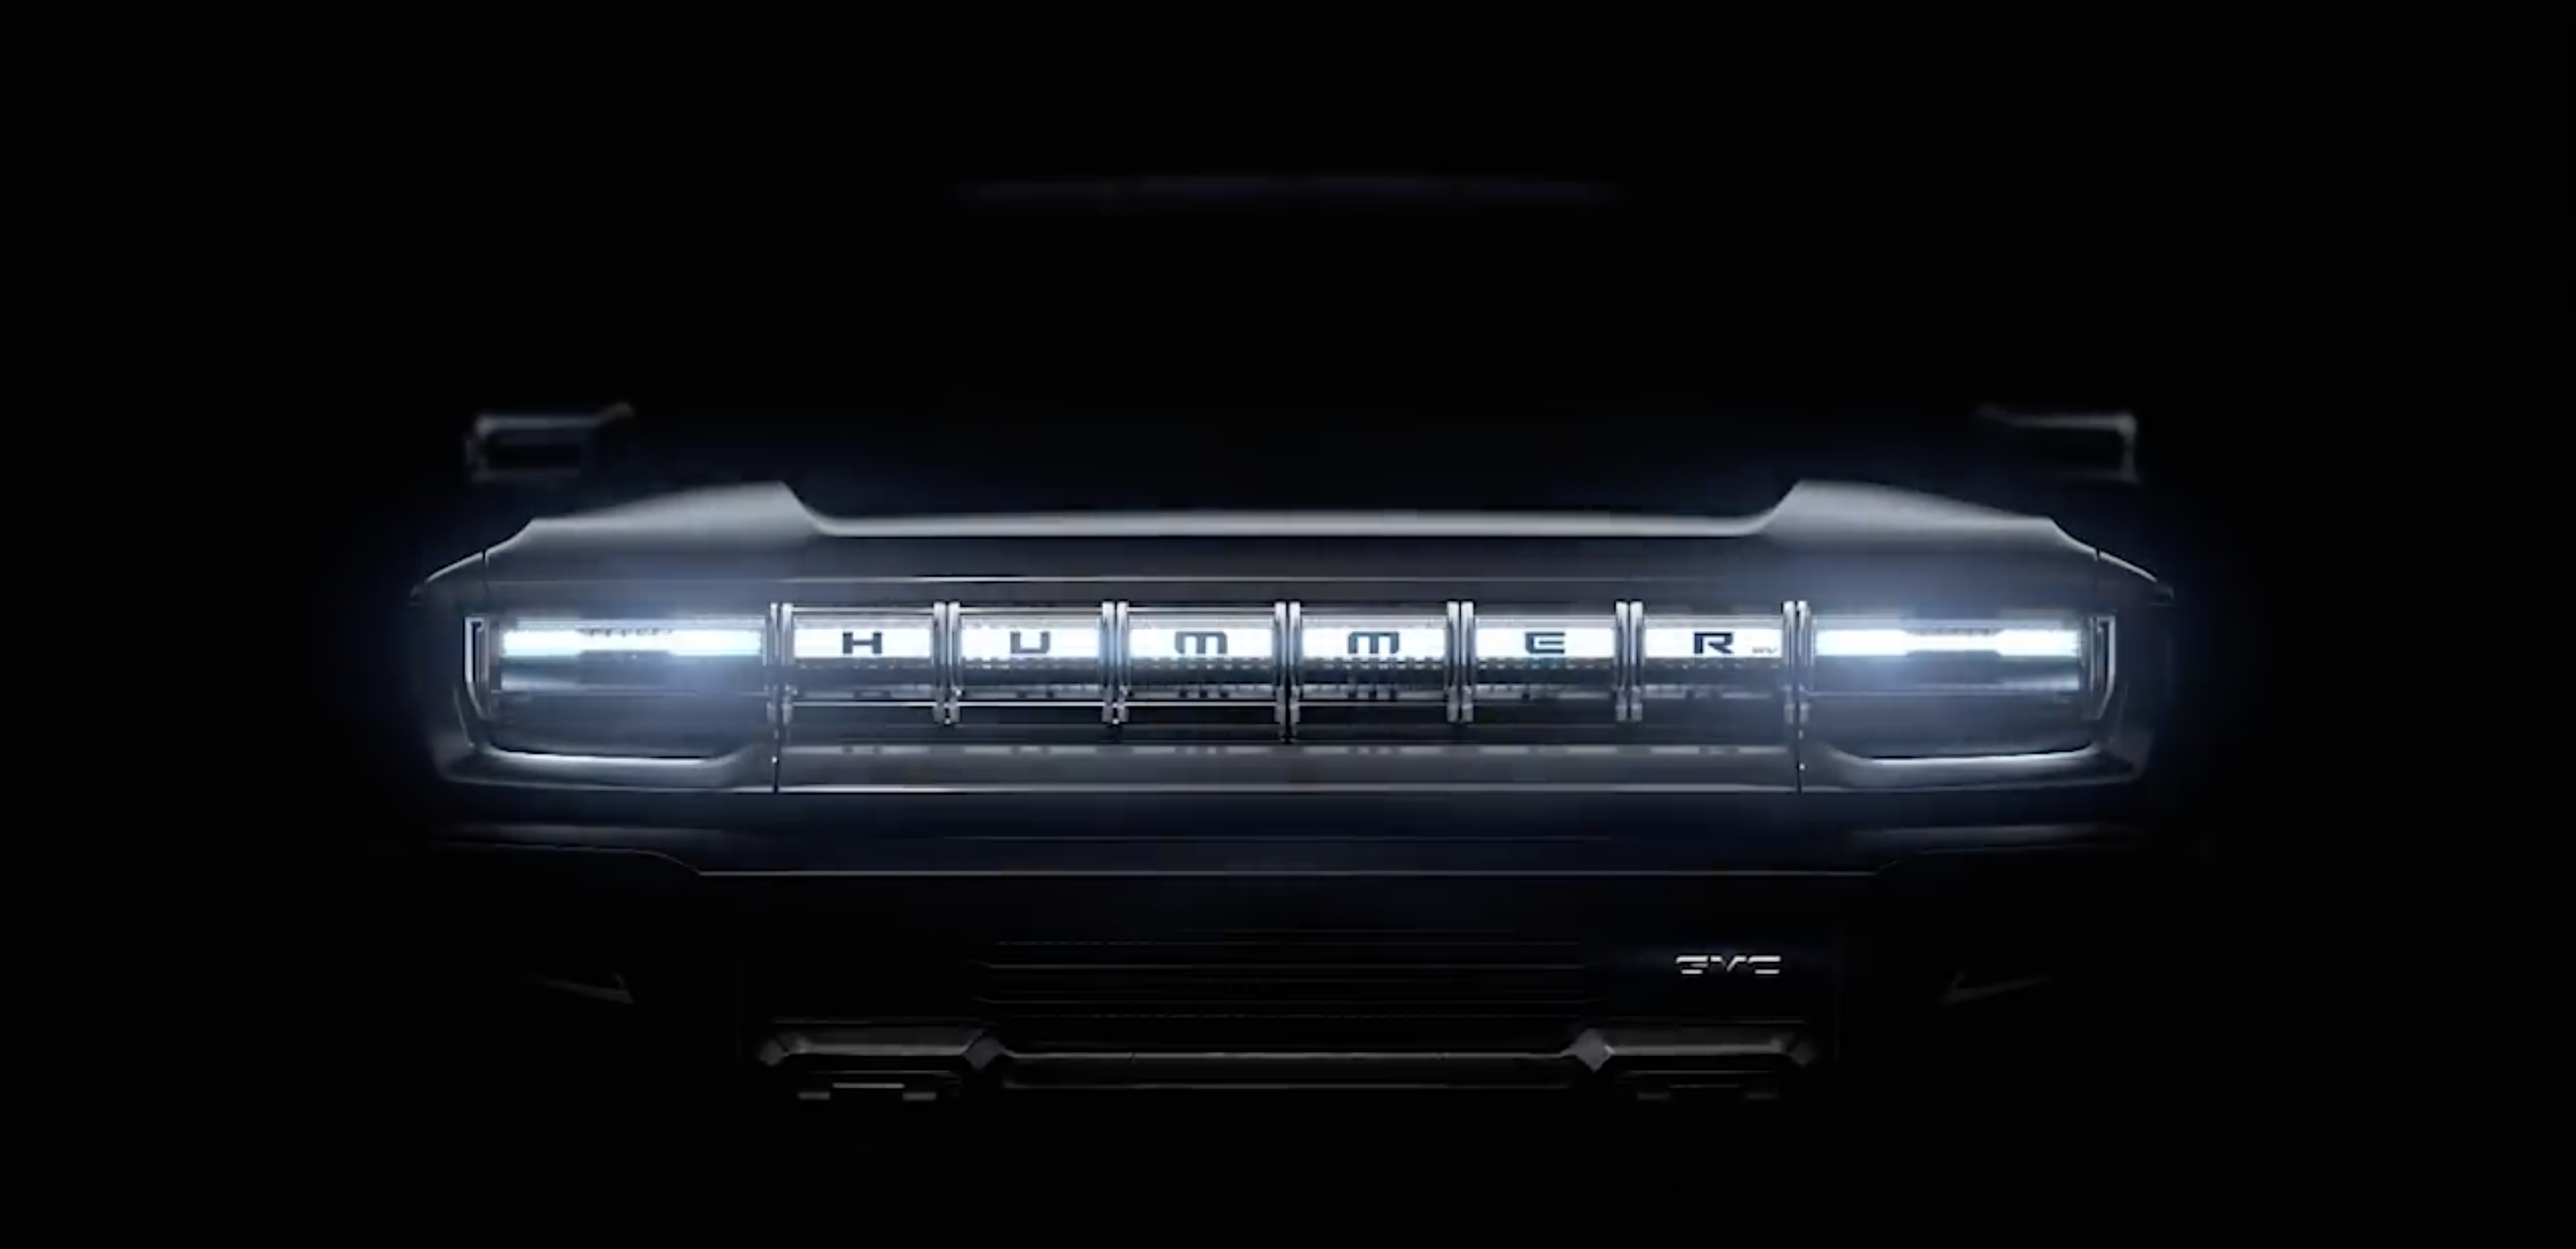 GMC Announces The First Ever Electric Hummer — In A Super Bowl Commercial